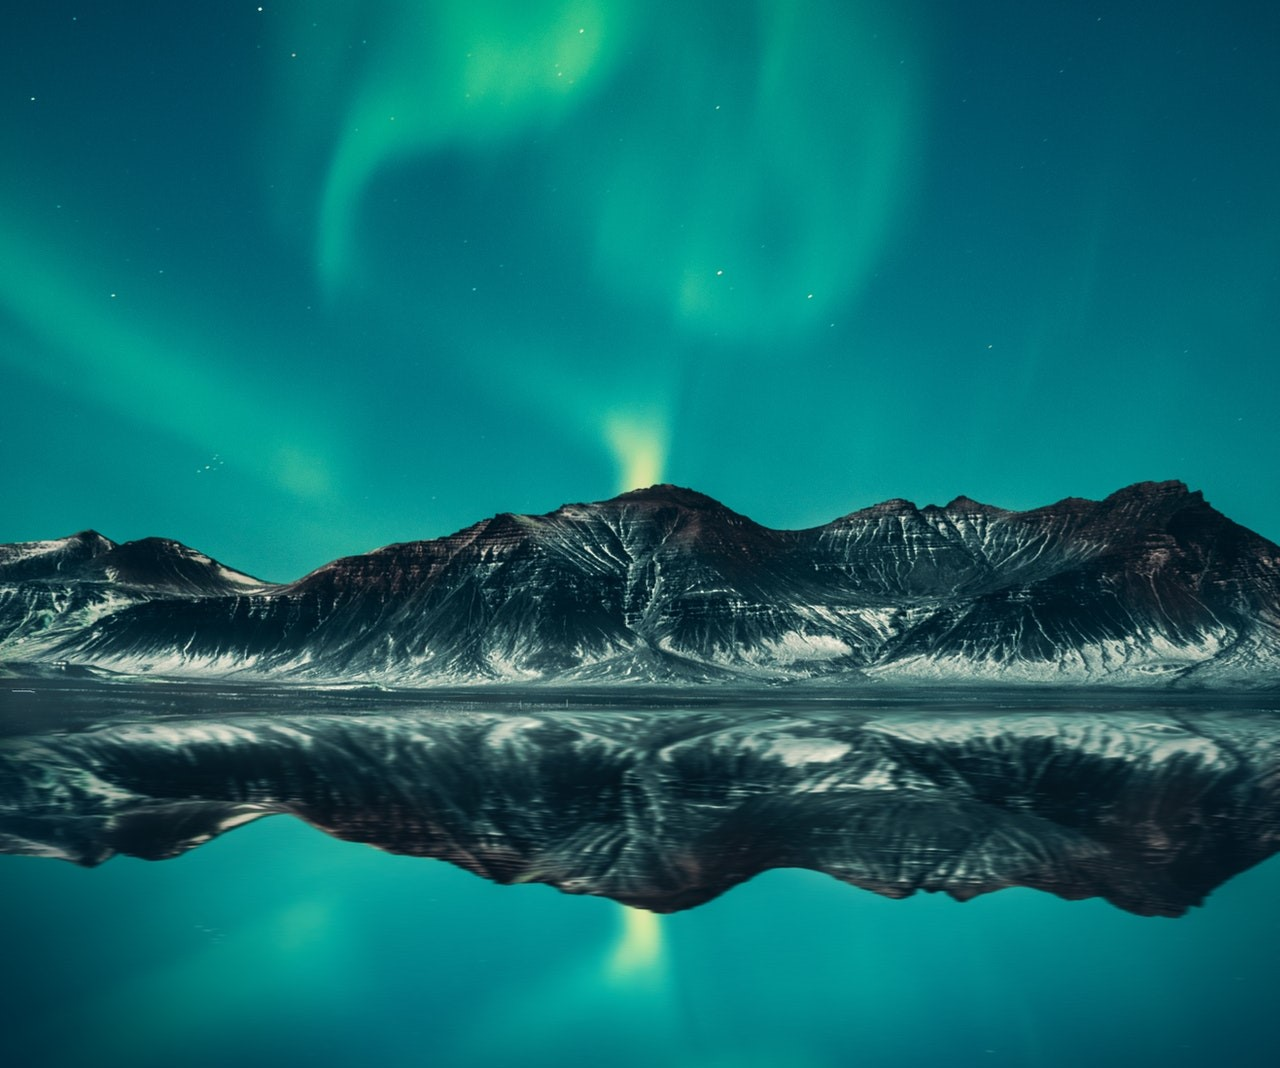 blue and green northern lights really visible over the mountains and a lake in Iceland